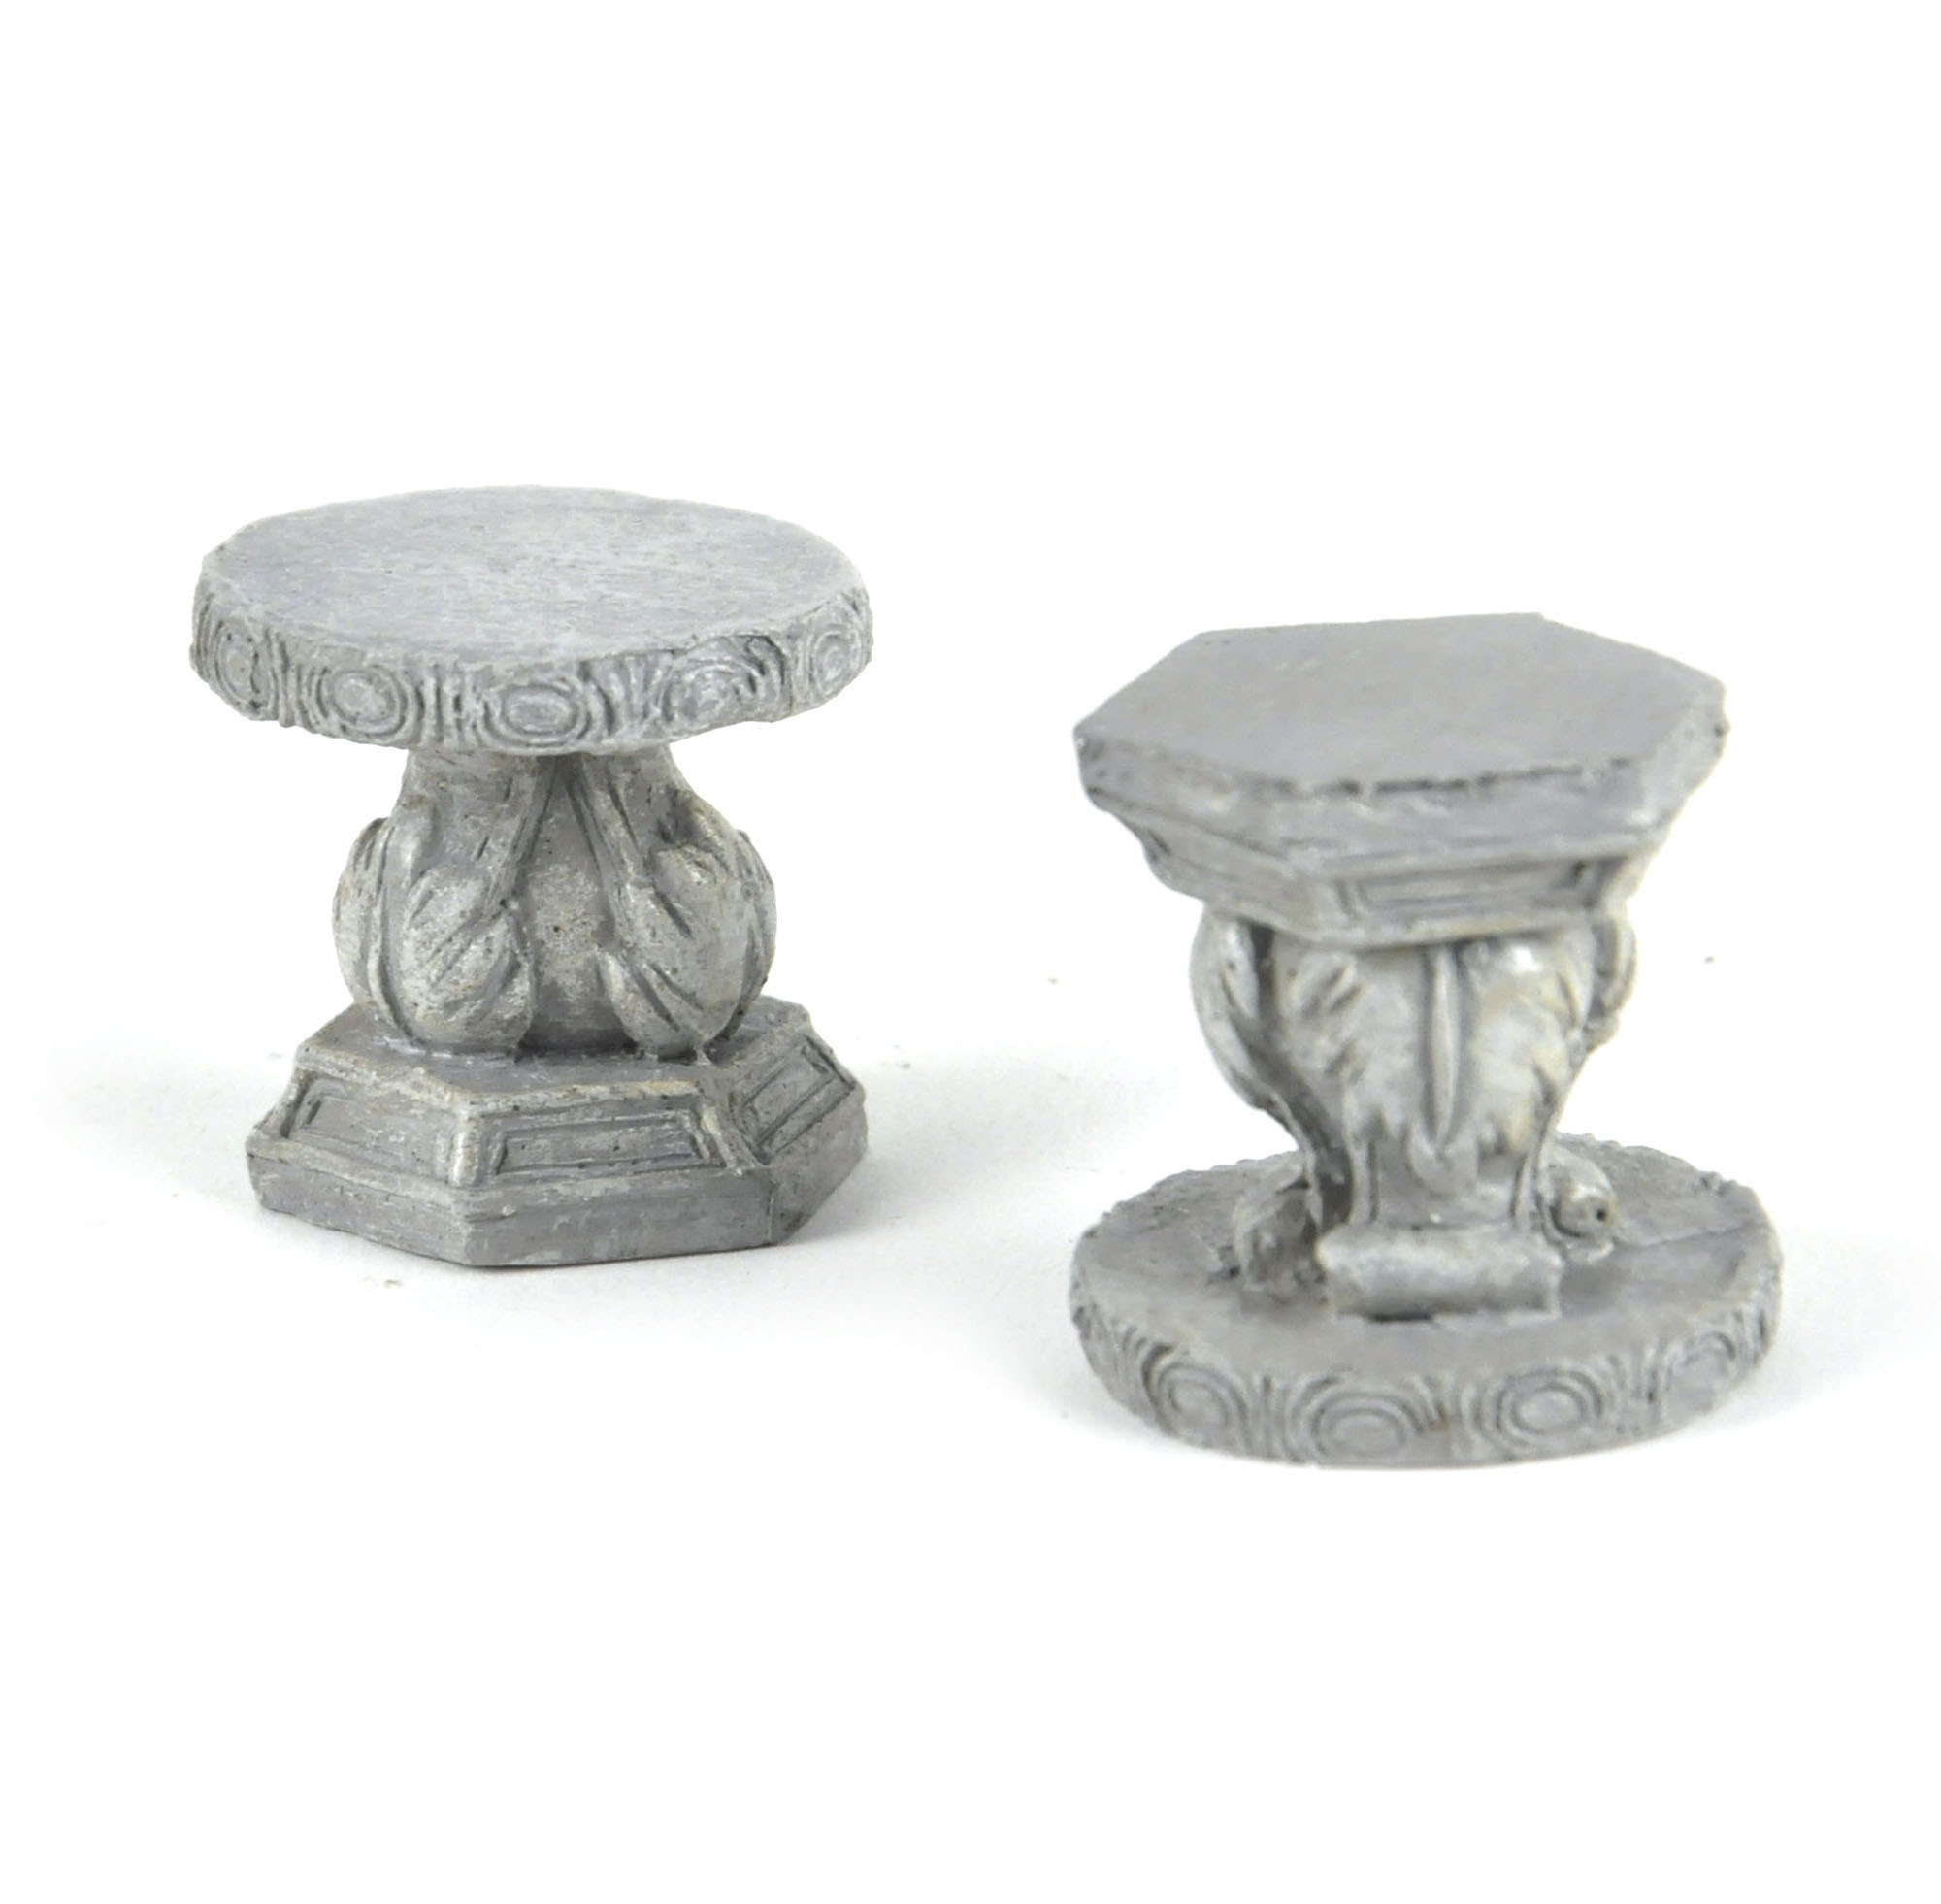 Merveilleux Fairy Stone Garden Stools   Fiddlehead Fairy Garden Collection